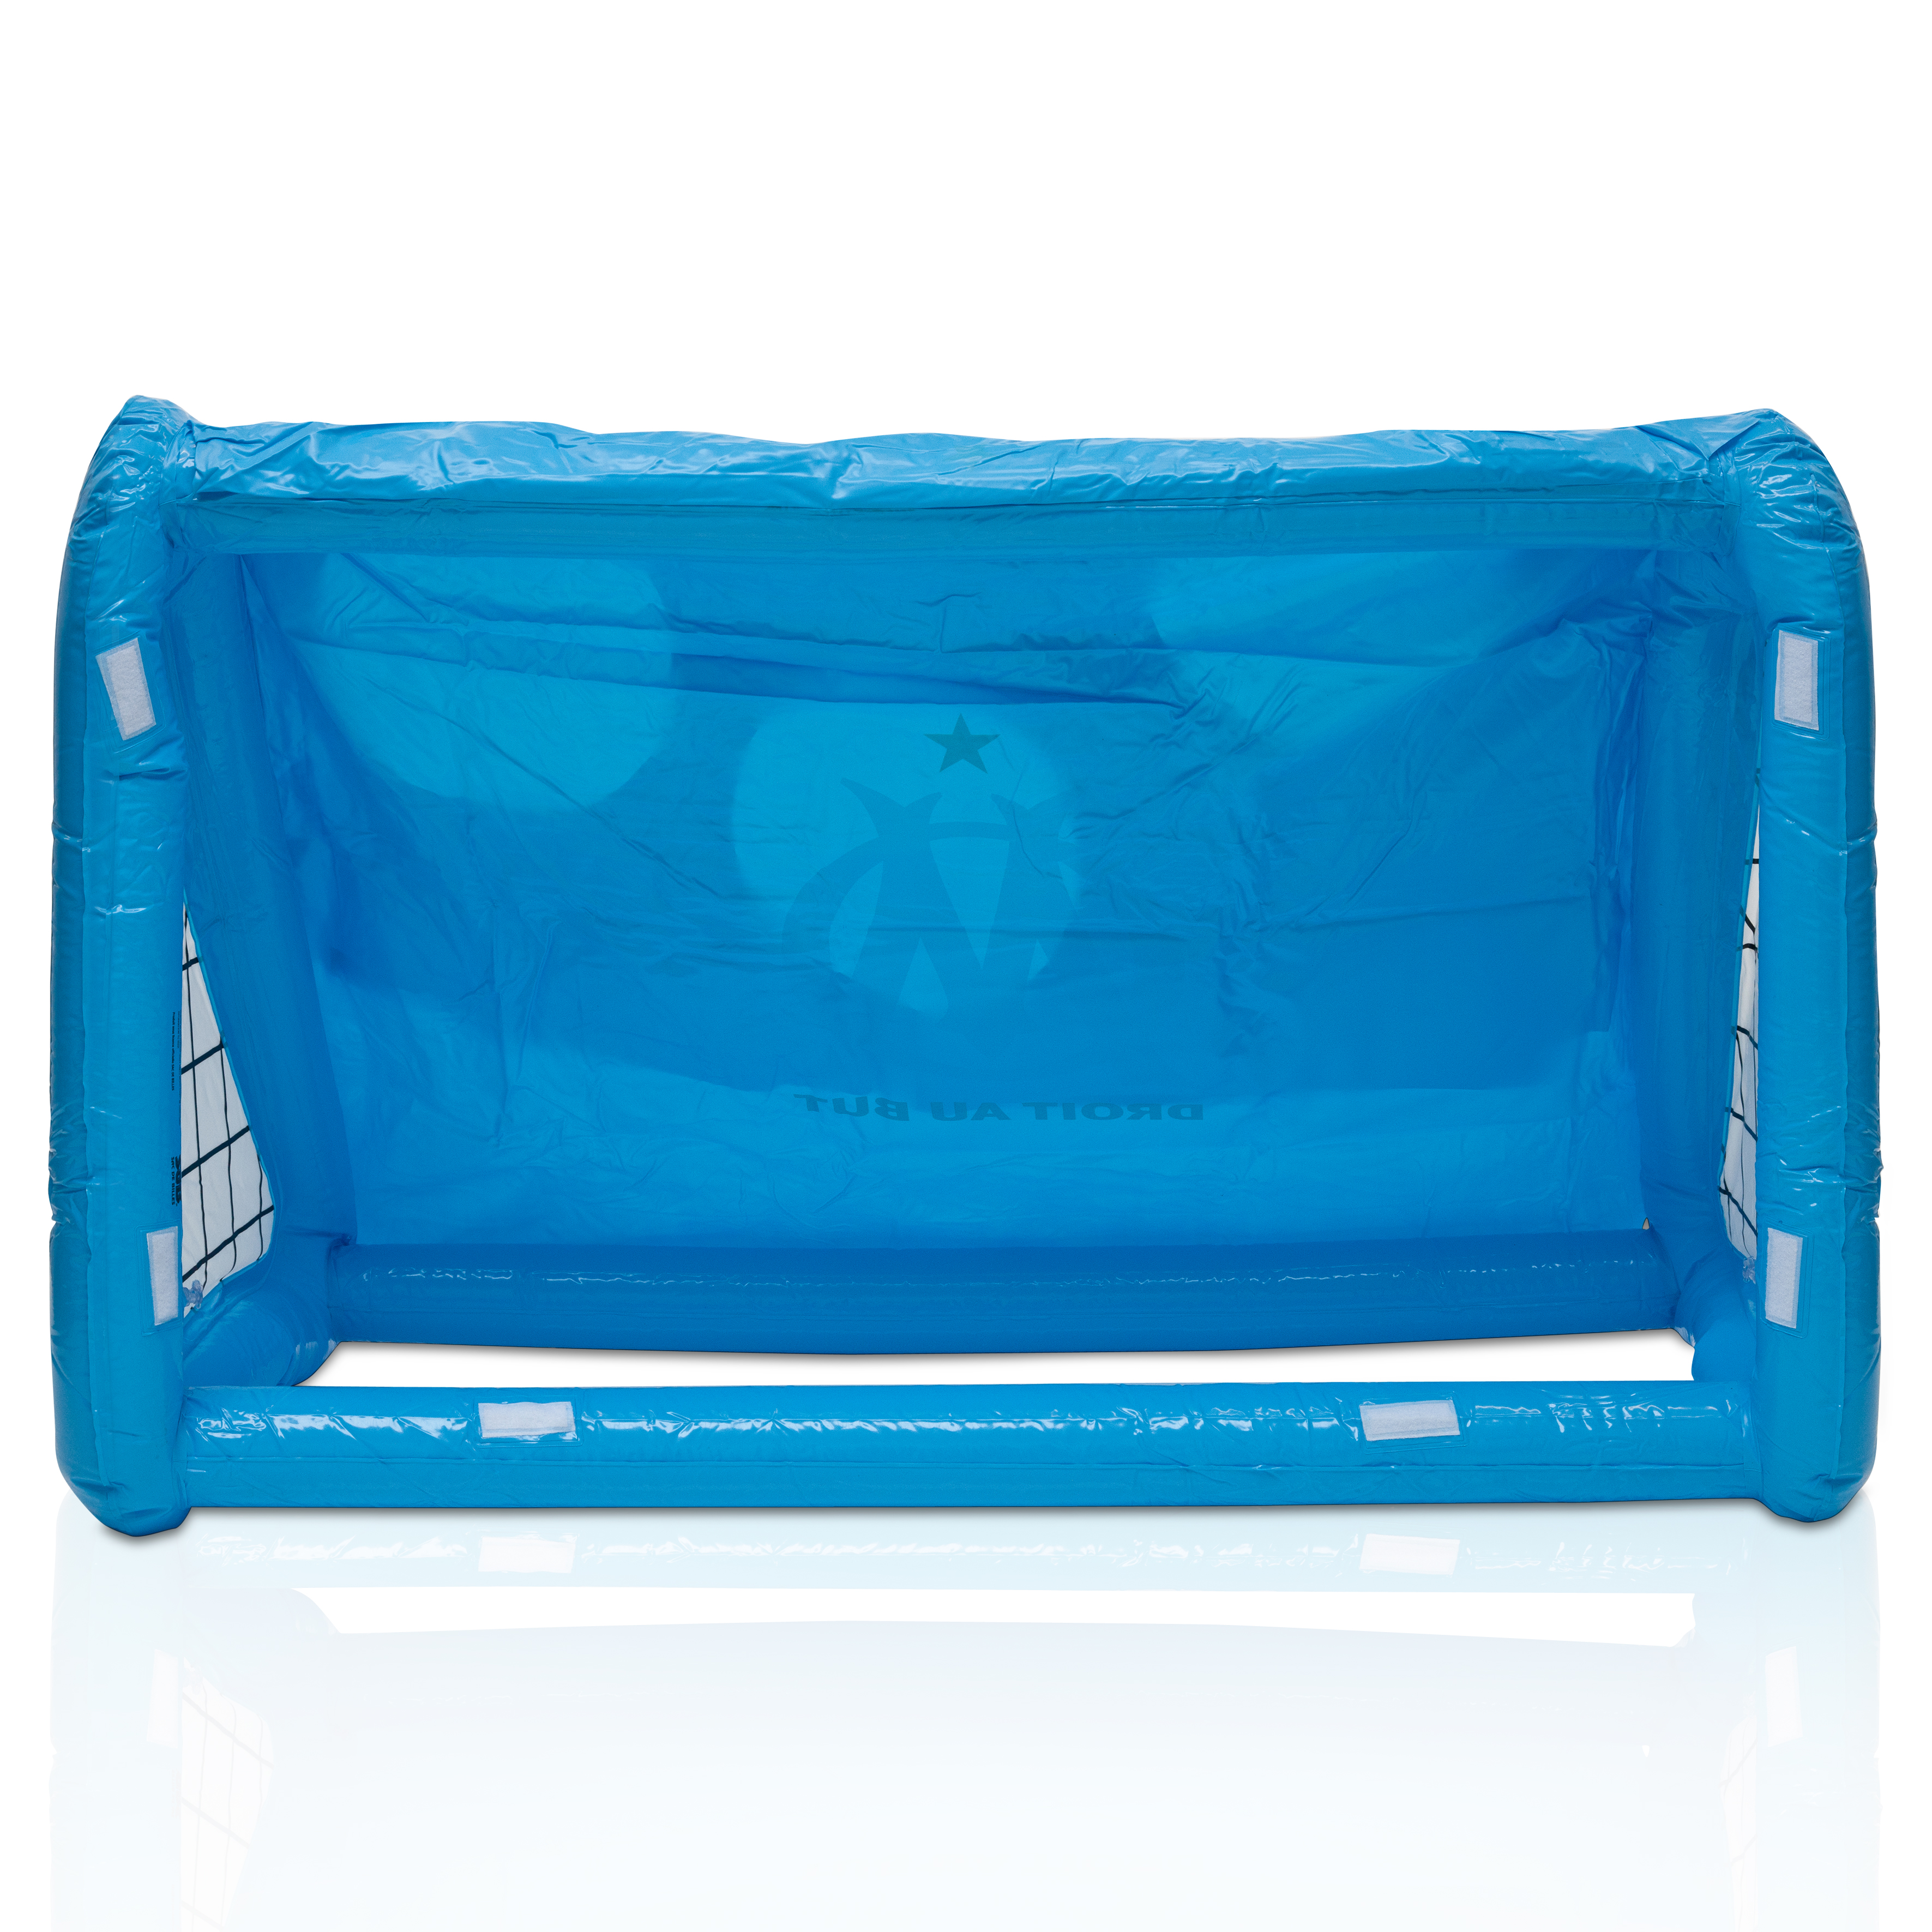 Olympique de Marseille Inflatable Goals - Blue